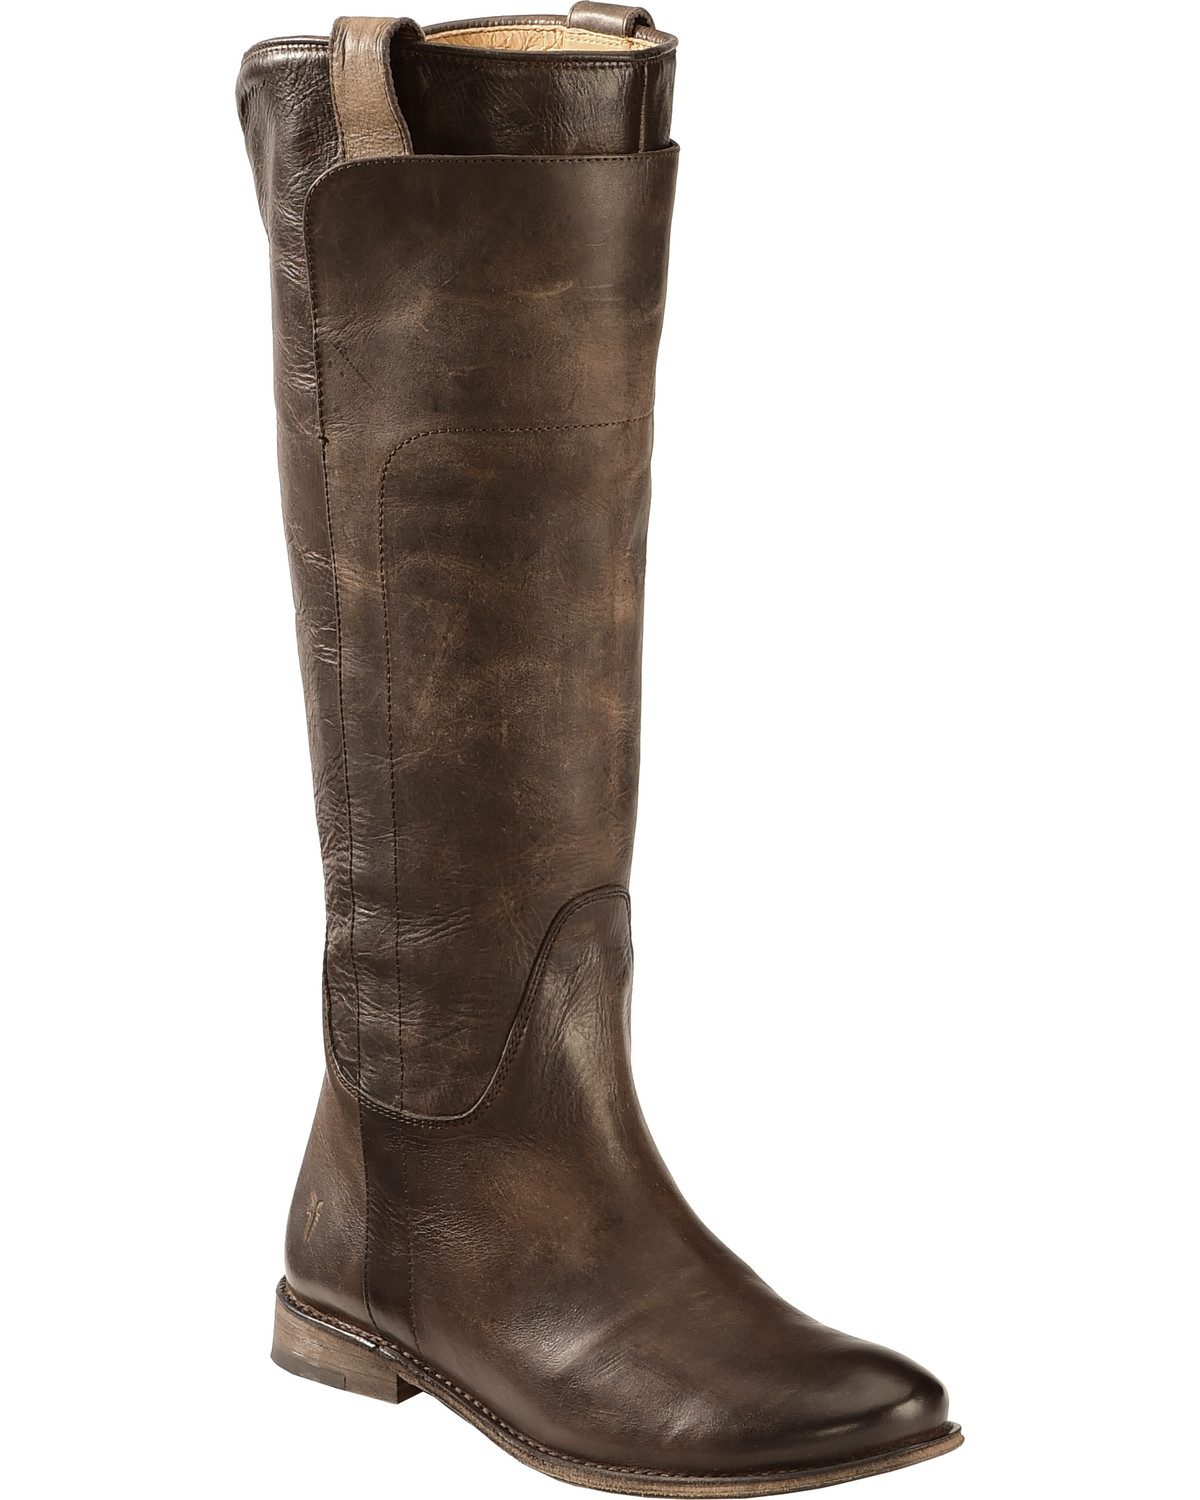 182d8d0d2 Zoomed Image Frye Women's Slate Paige Tall Riding Boot - Round Toe , Slate,  ...